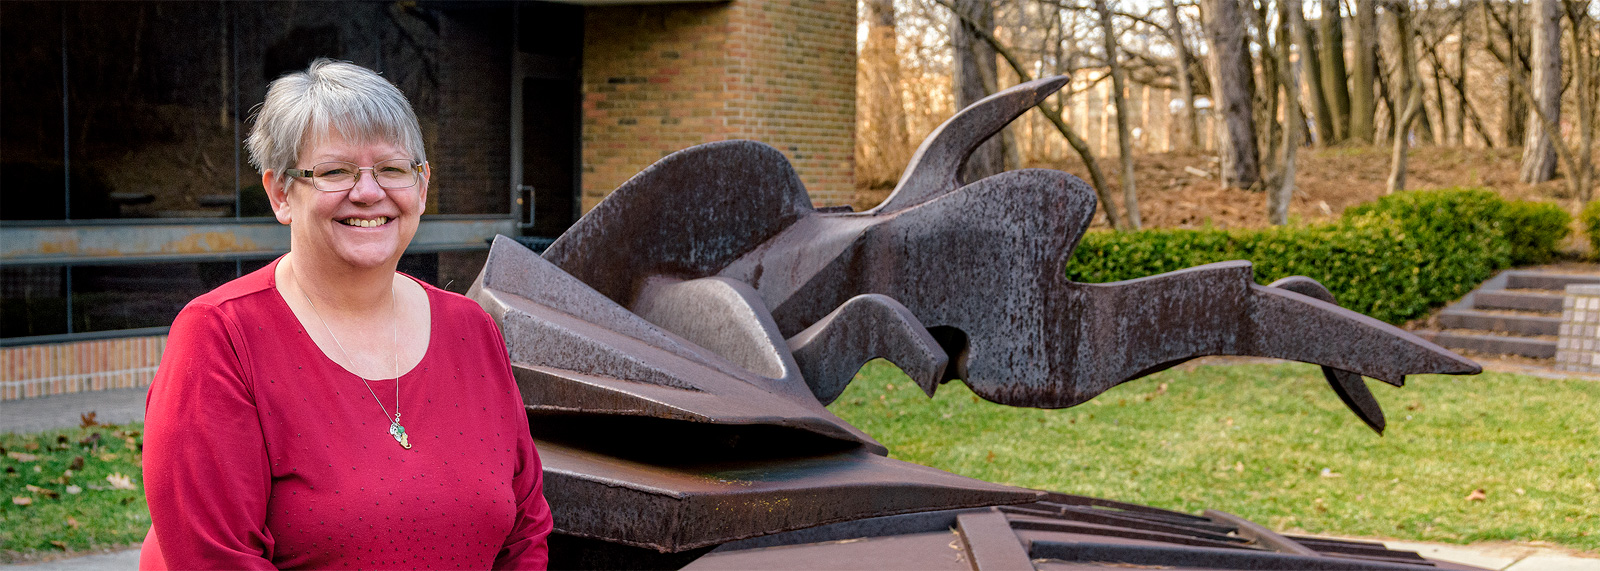 Deb Anderson at the Bentely Historical Library <span class='image-credits'>Doug Coombe</span>